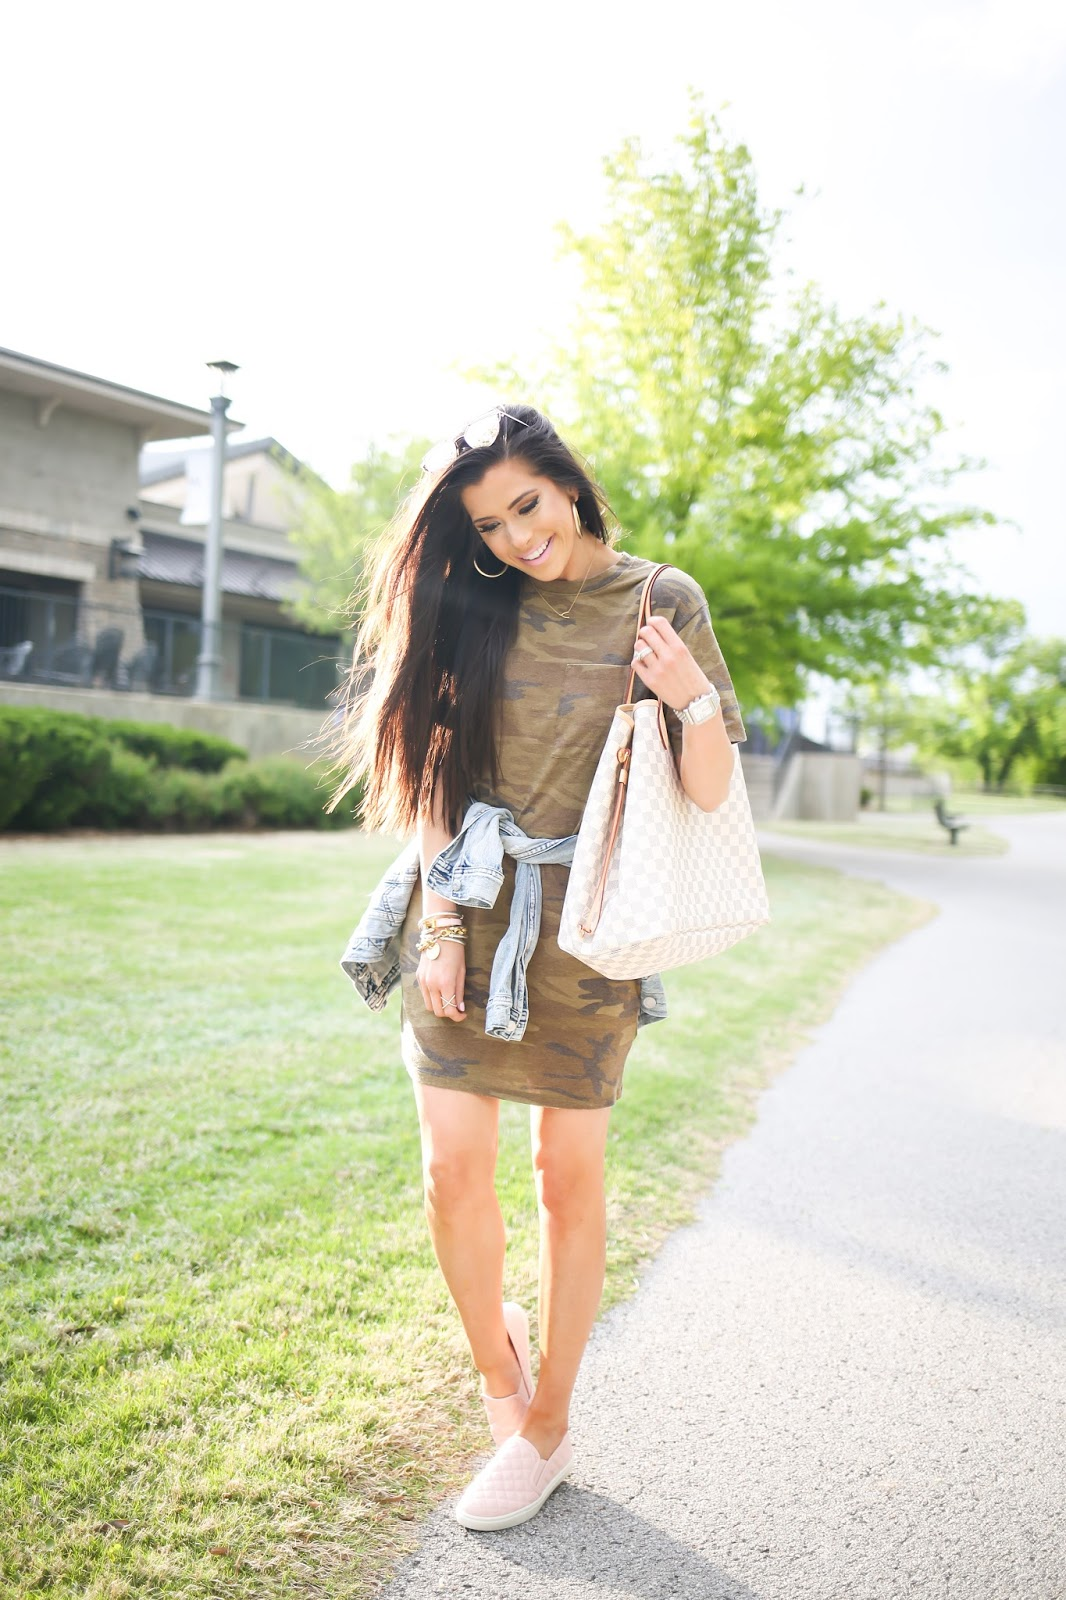 White t shirt dress outfit - Casual Outfit Camo T Shirt Dress